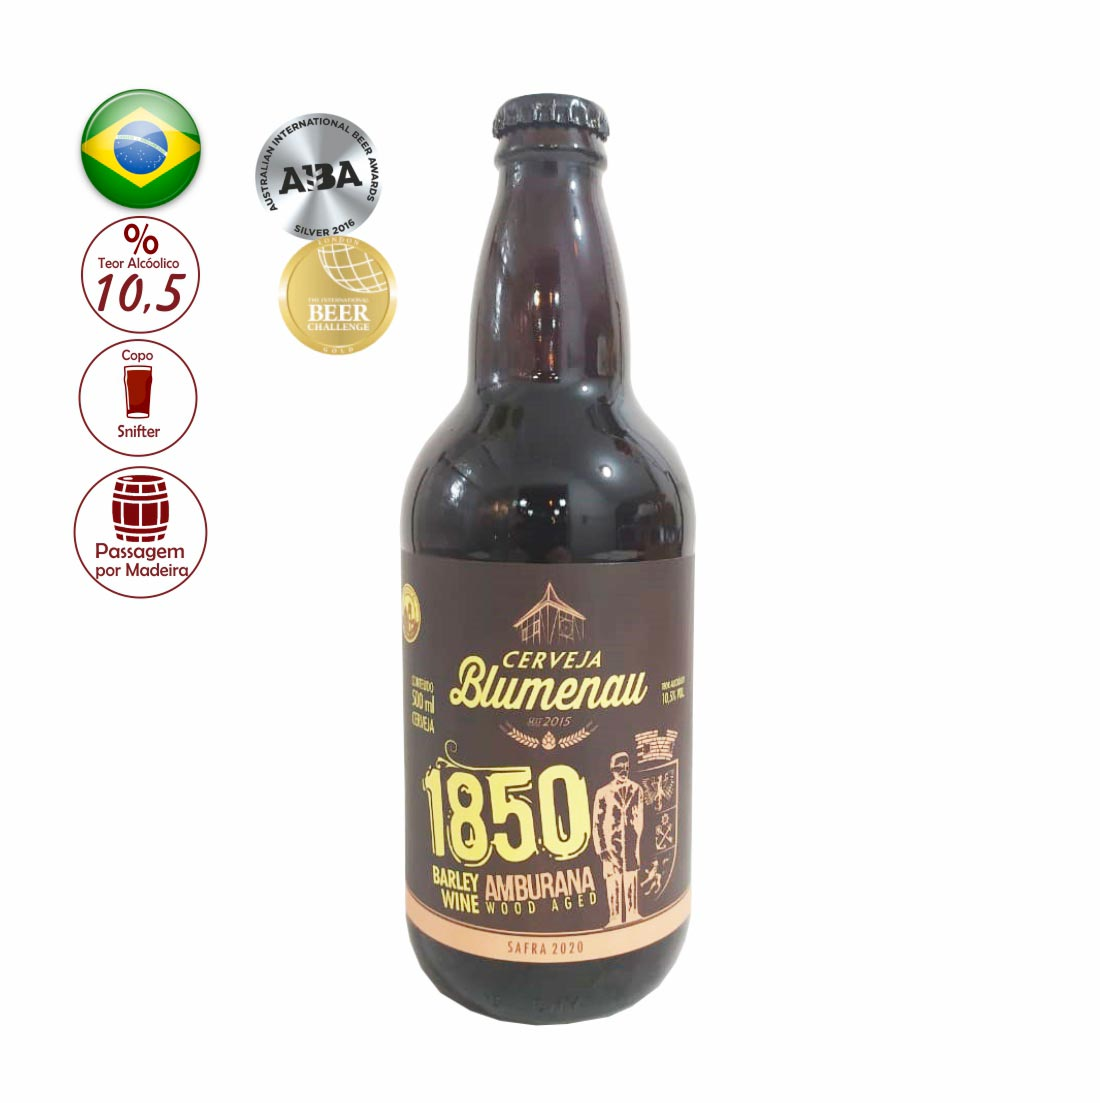 CERVEJA BLUMENAU 500ML 1850 BARLEY WINE AMBURANA WOOD AGED